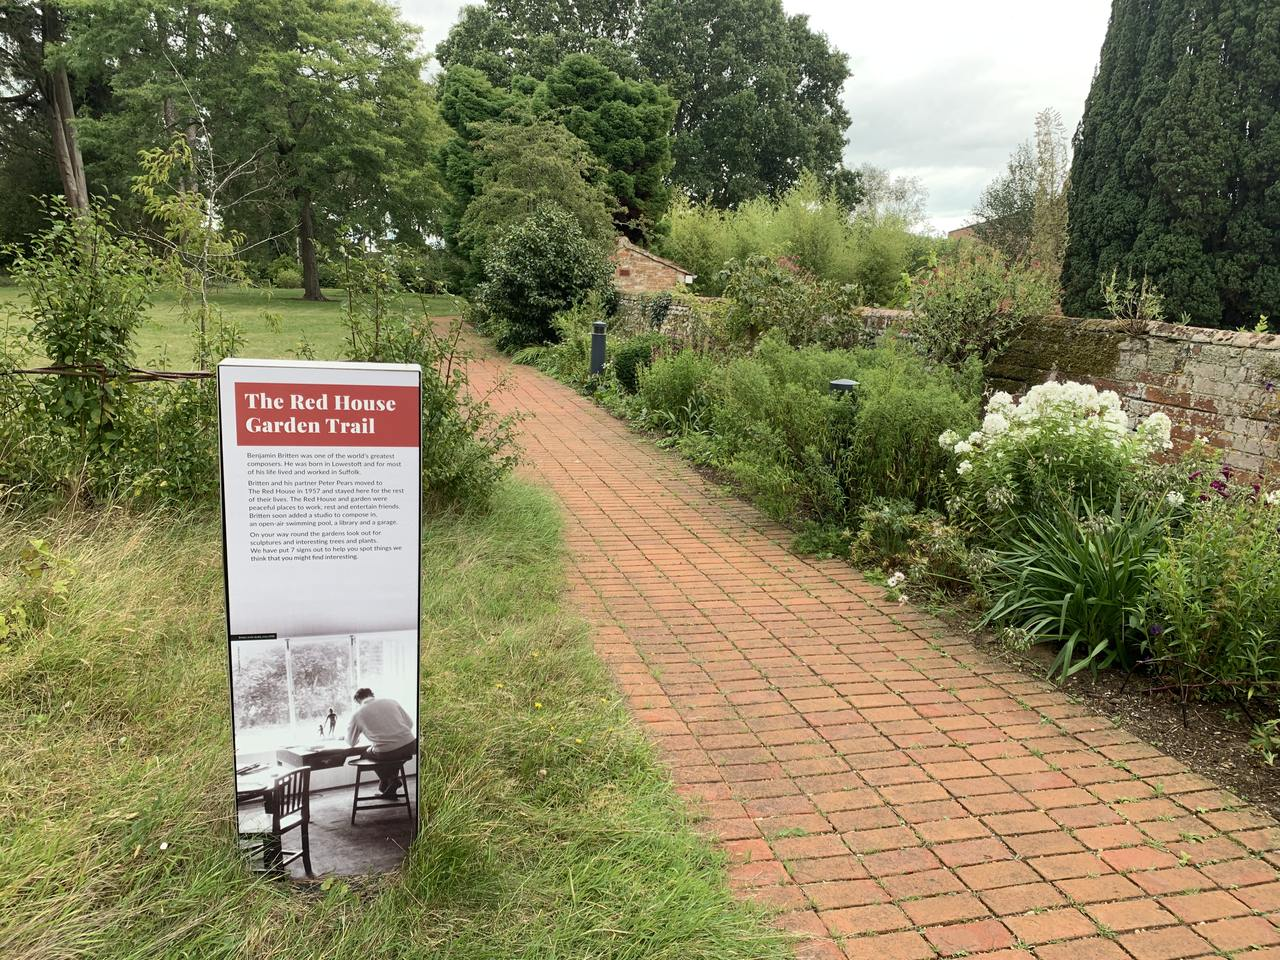 The Red House garden trail